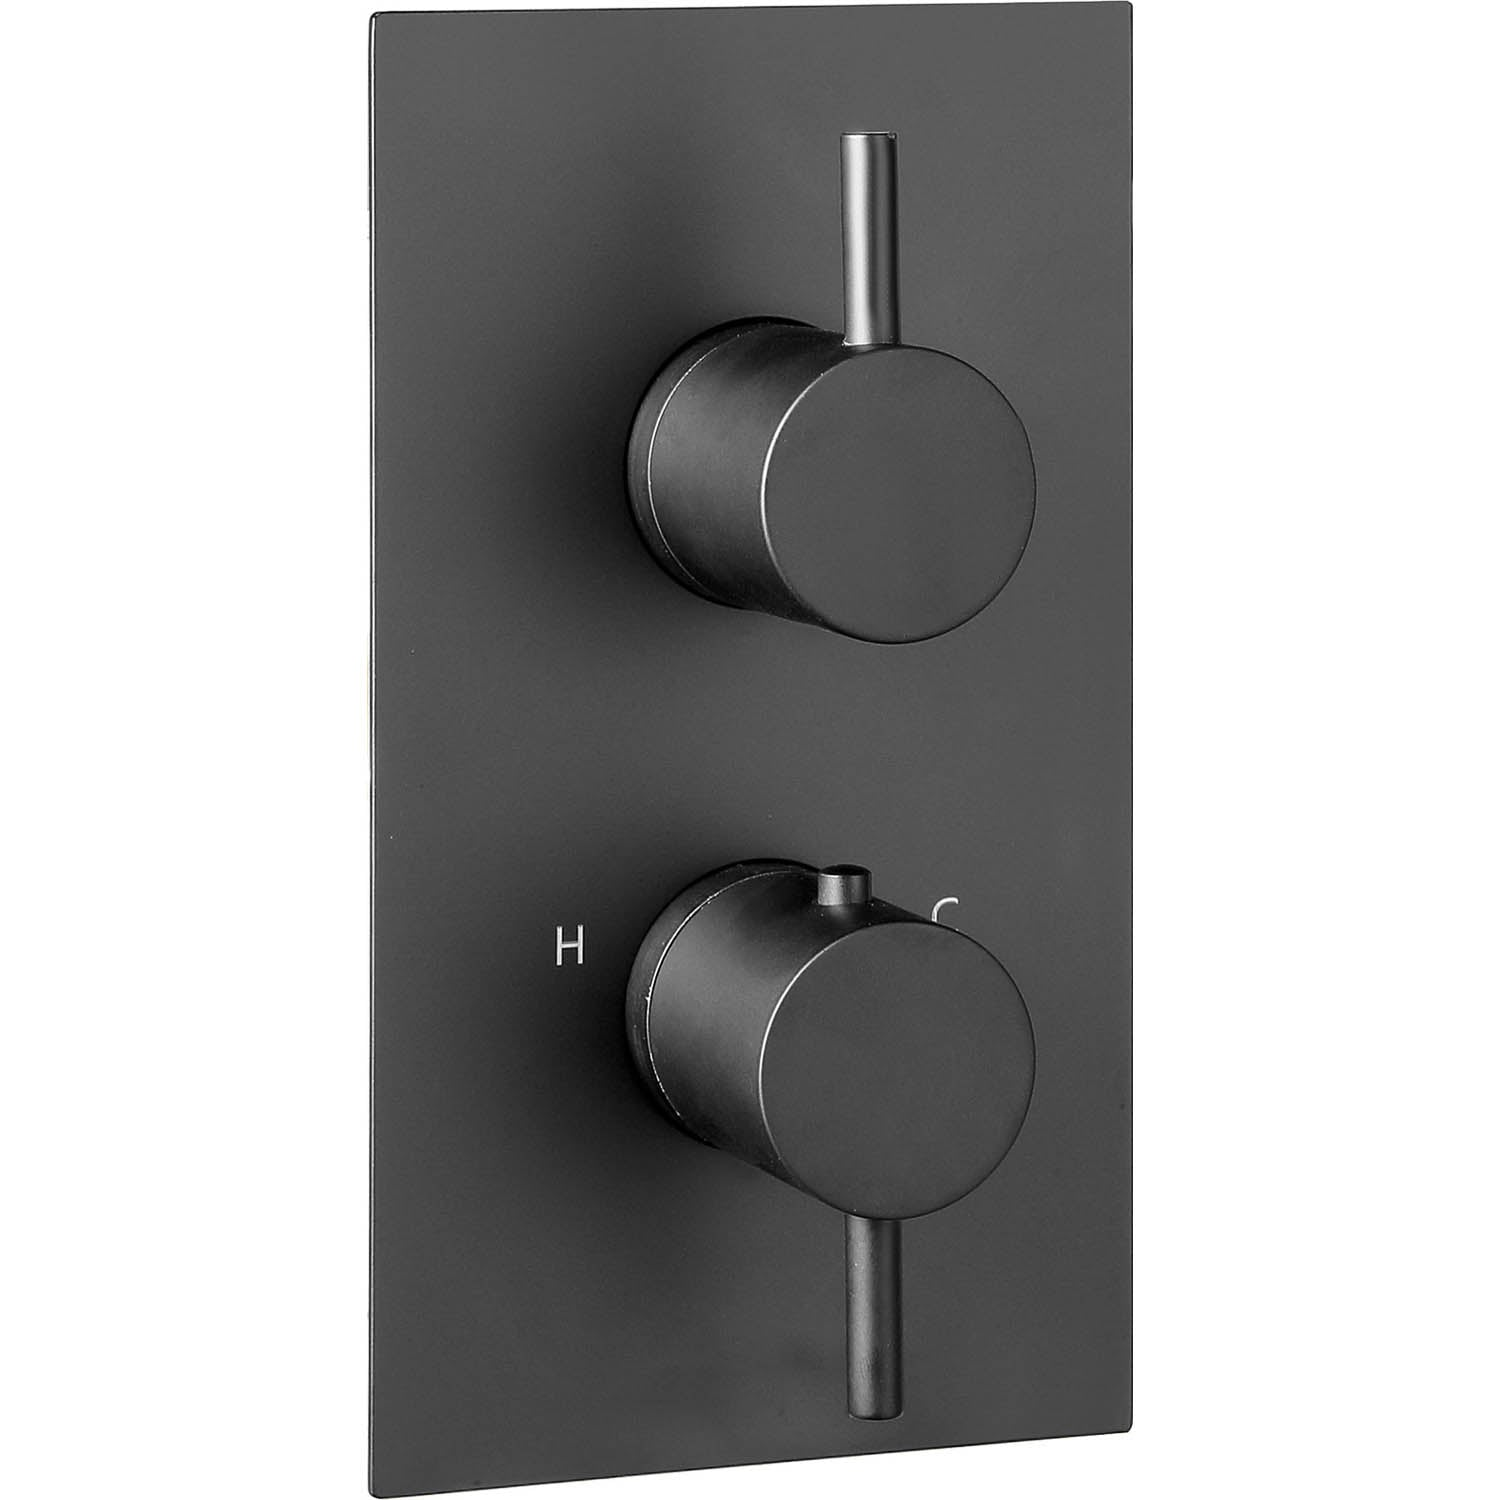 Dual outlet Libero Concealed Shower Valve with a matt black finish on a white background